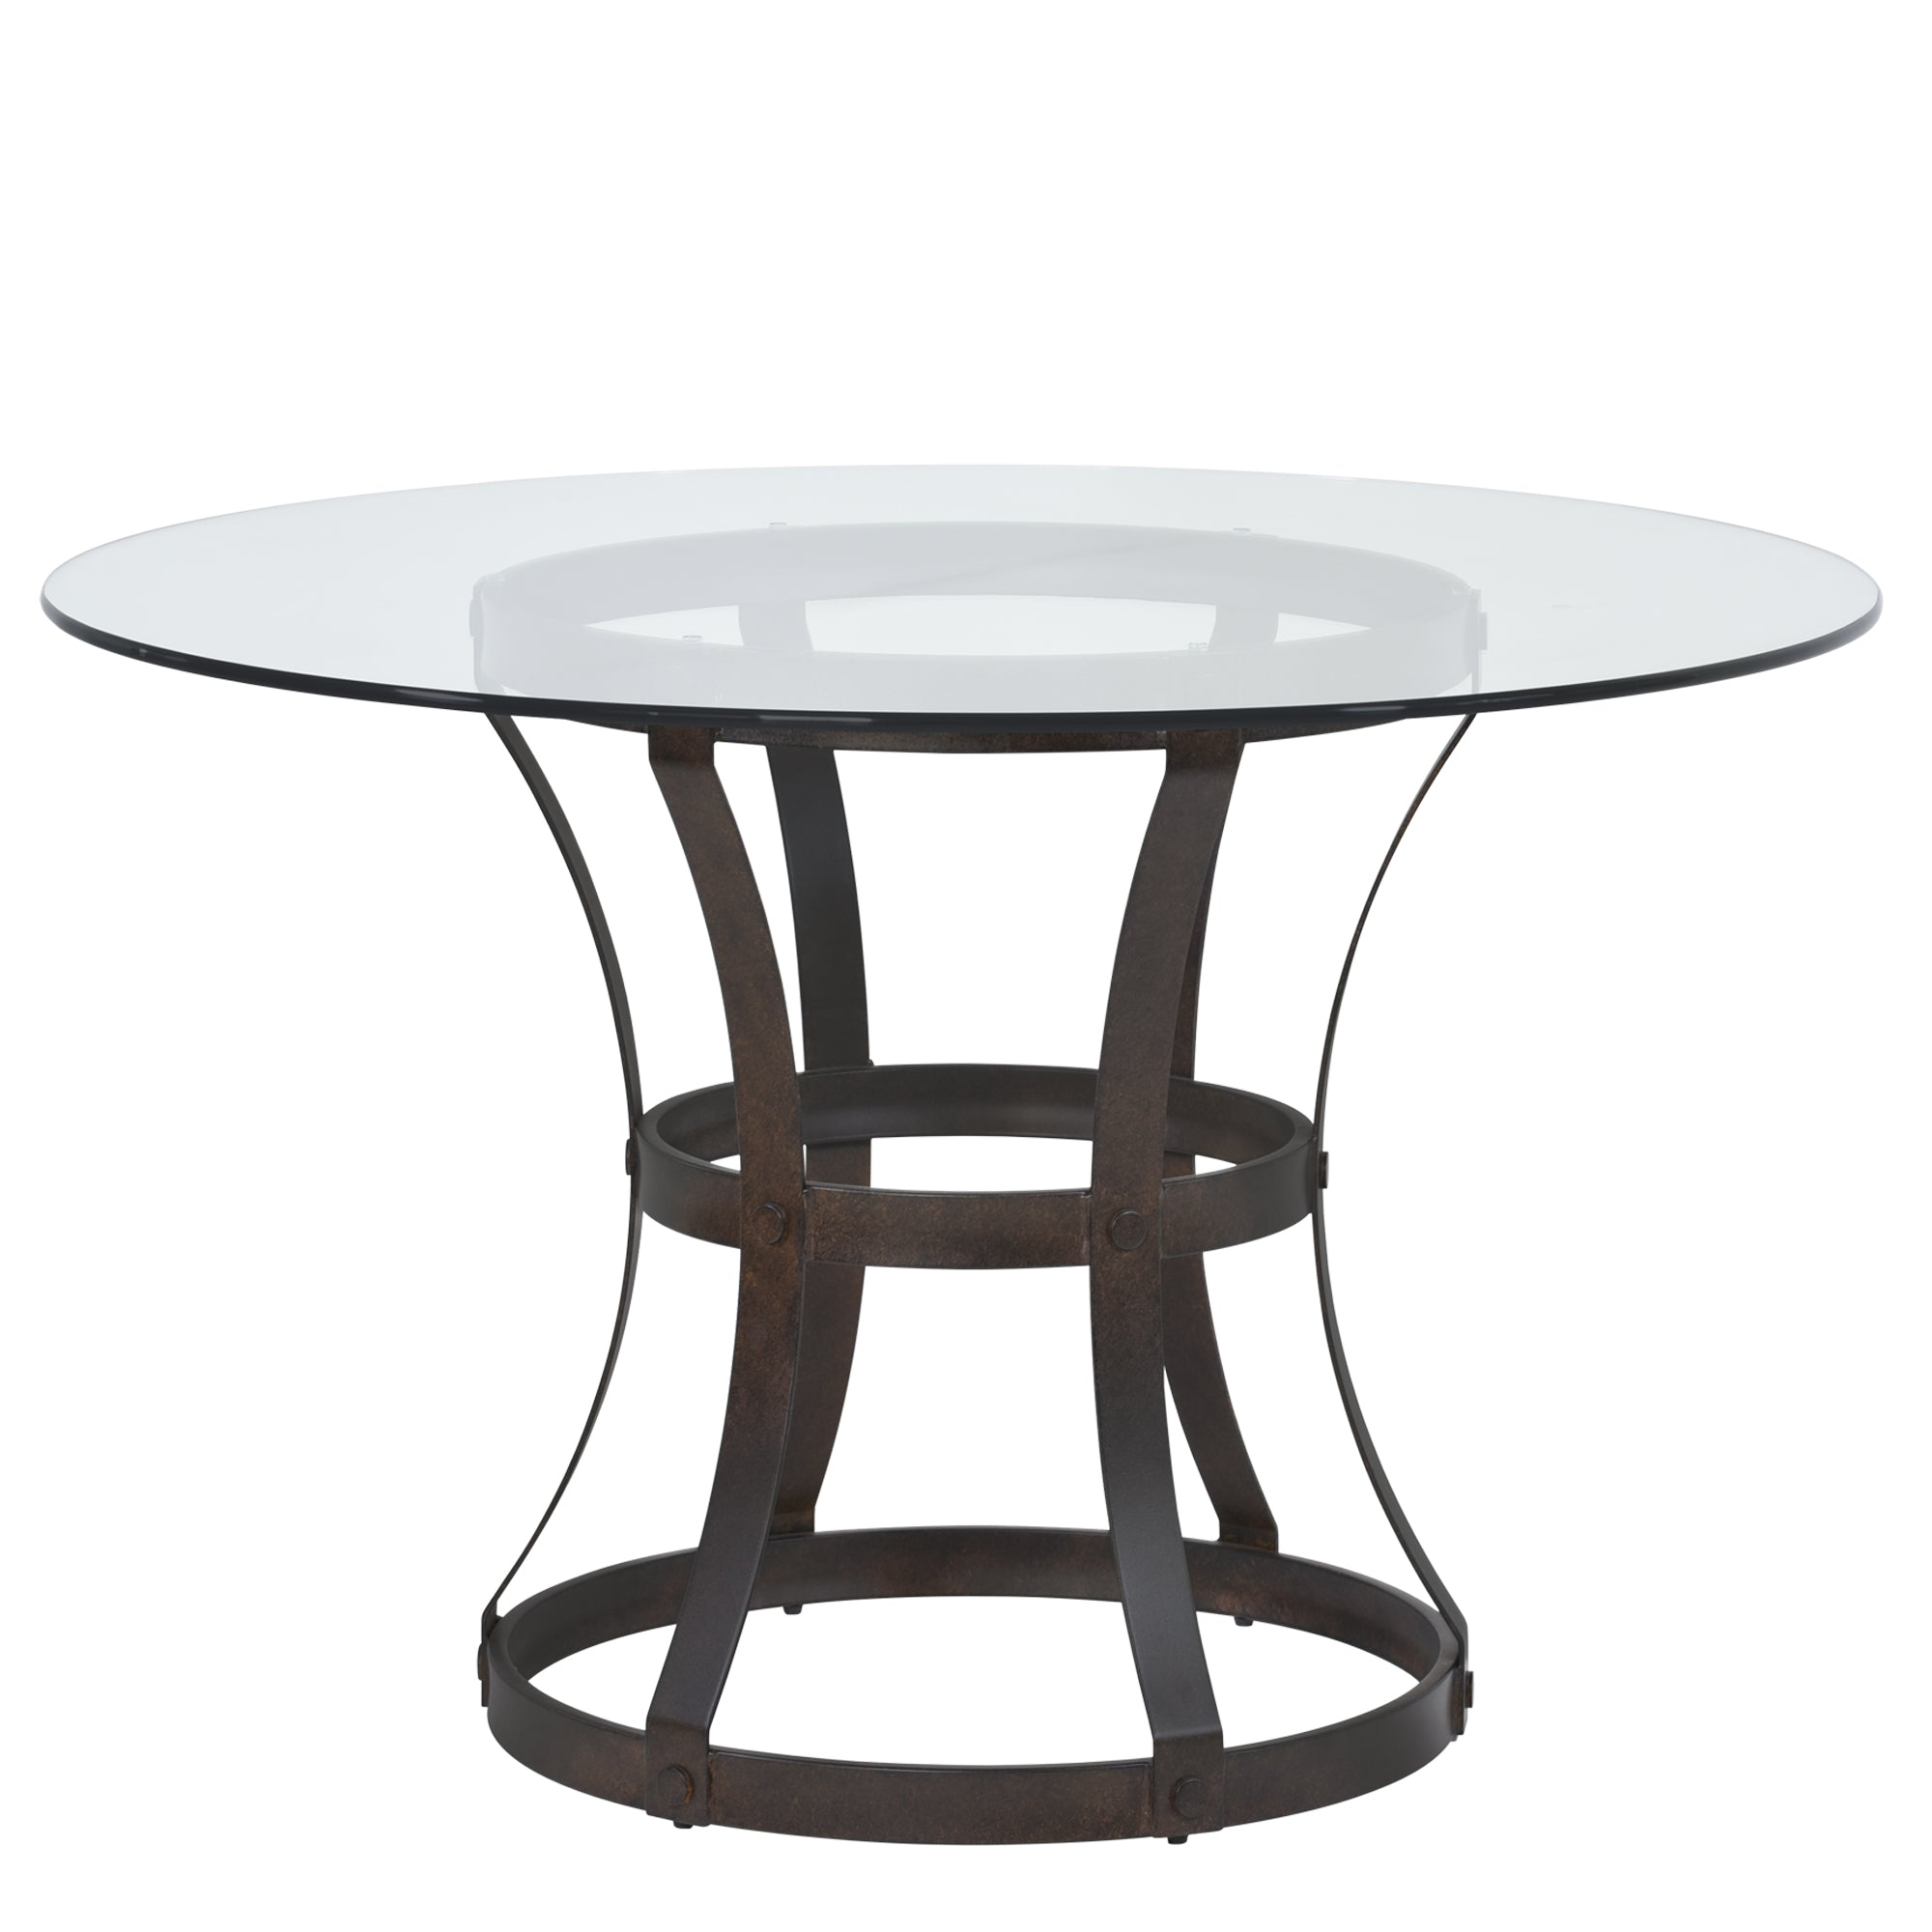 Armen Living Round Dining Table Auburn Bay Glass Top Vancouver